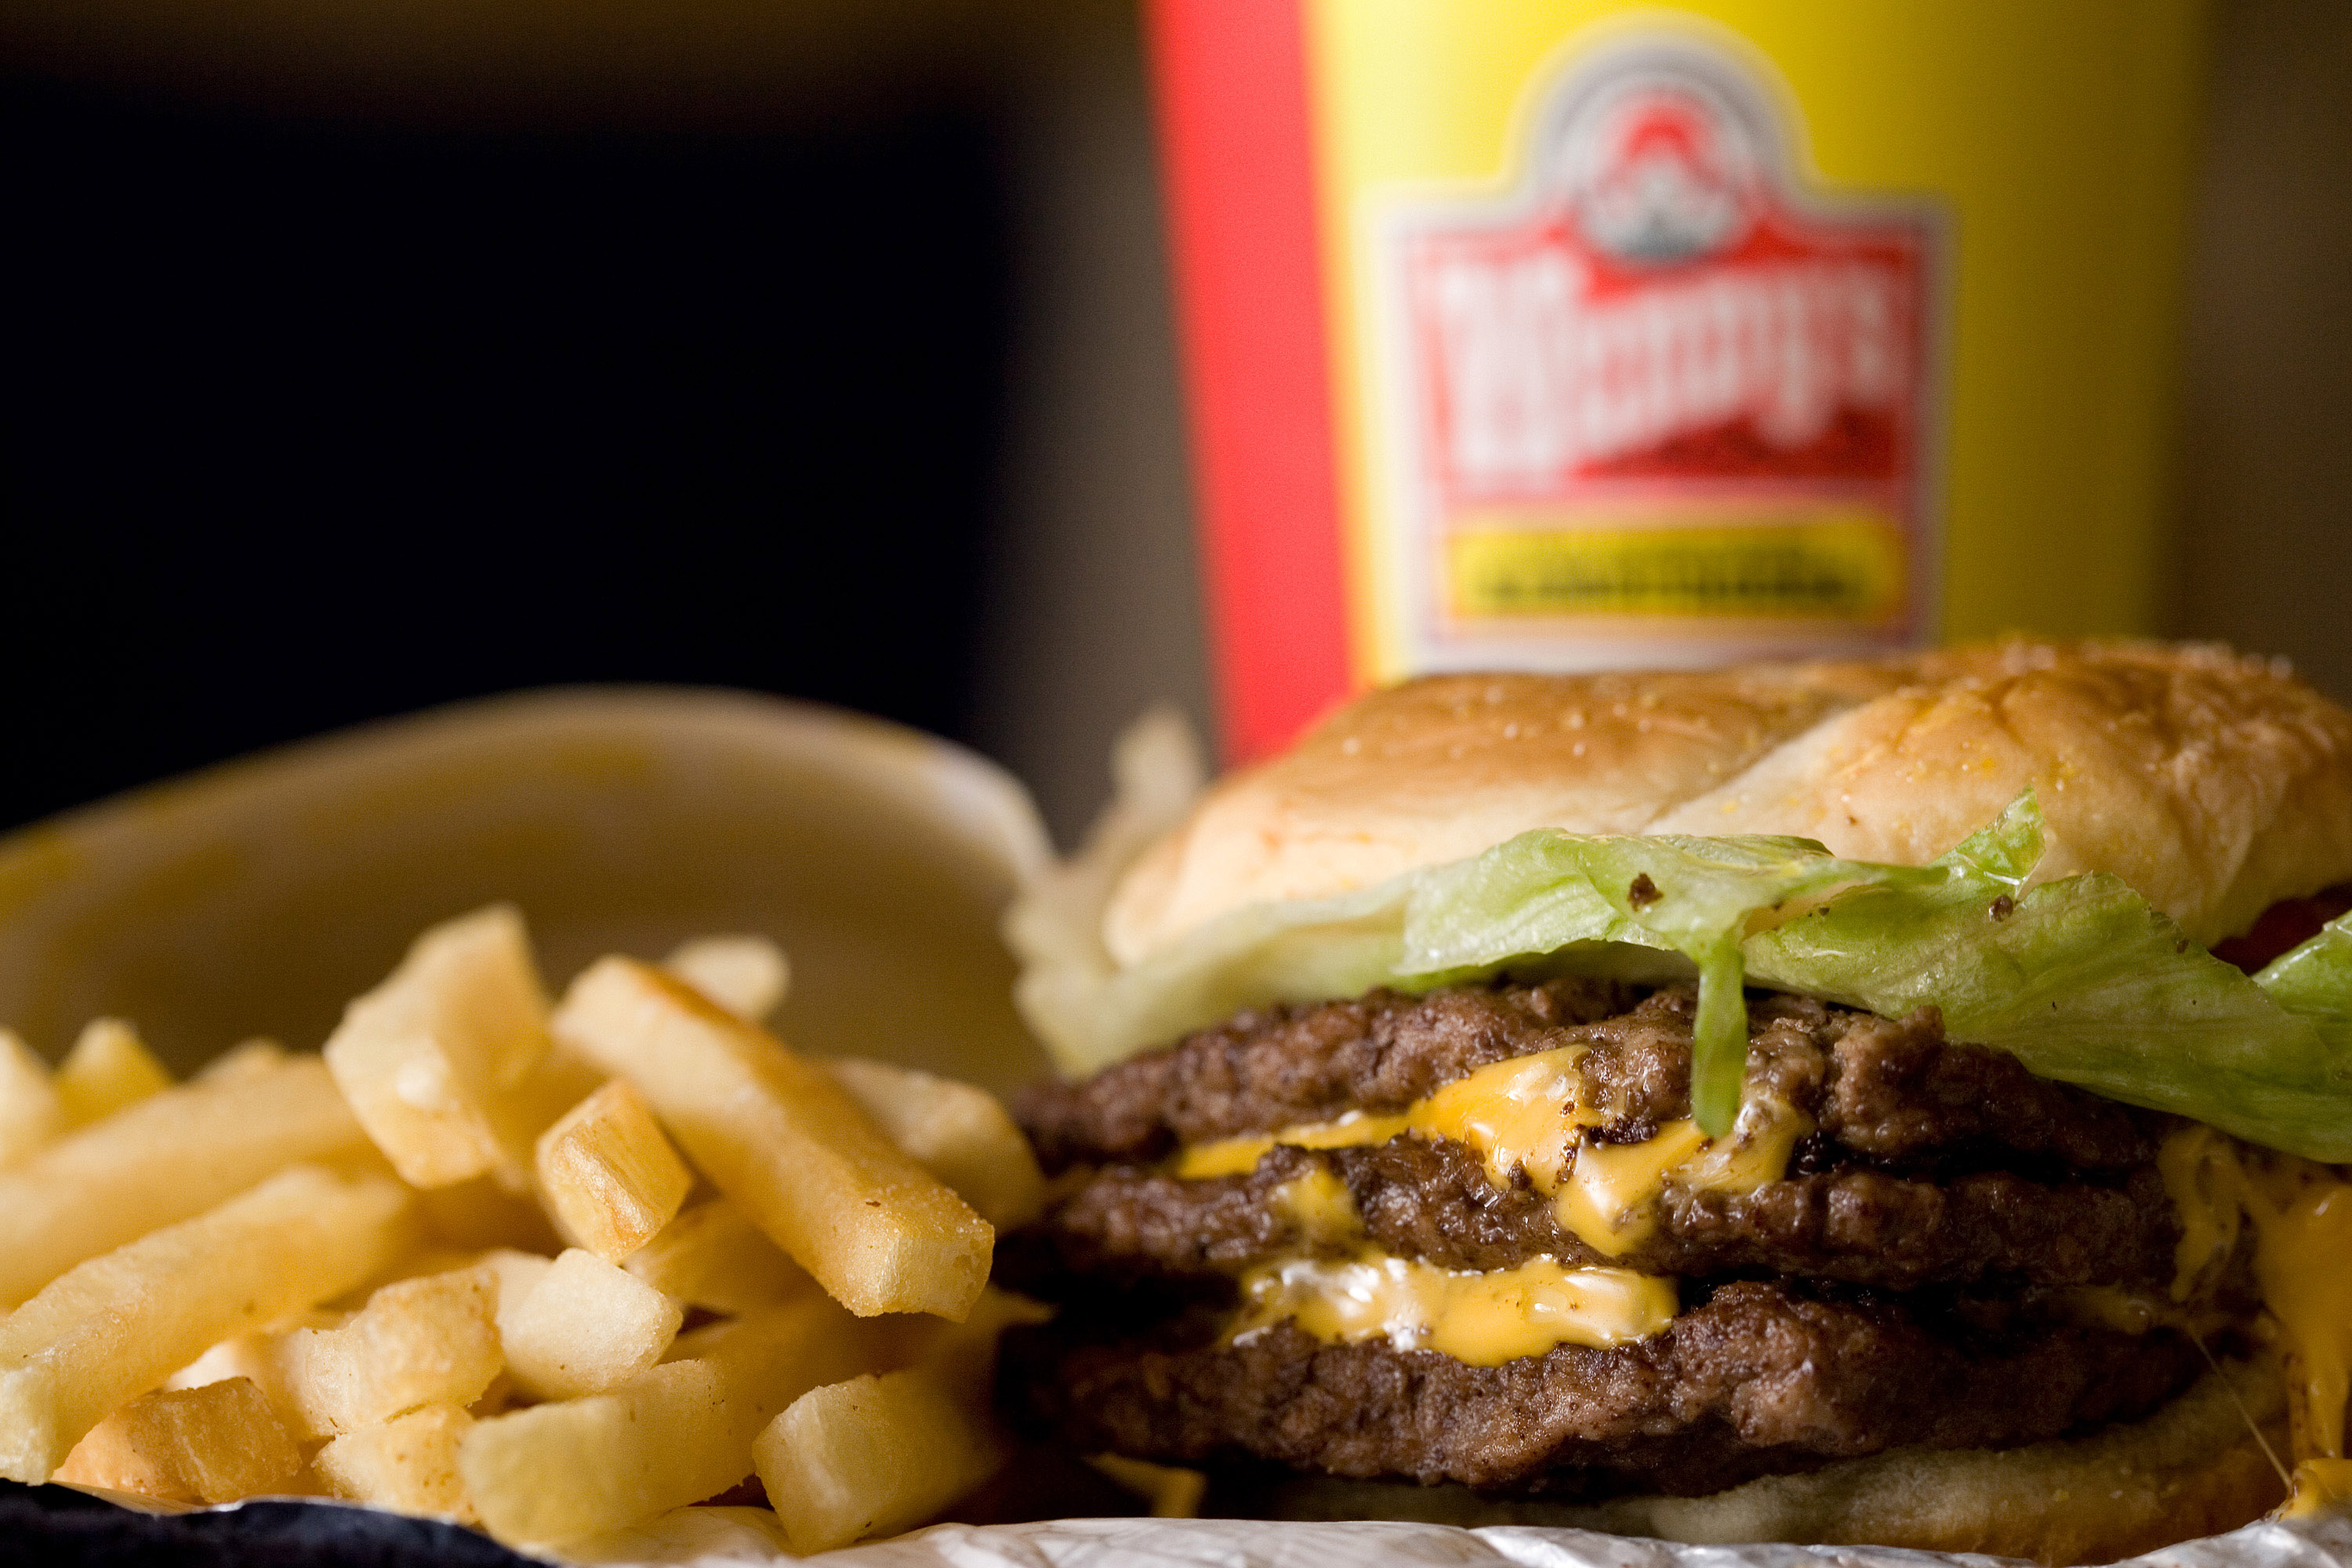 A triple cheeseburger combo is arranged for a photograph in